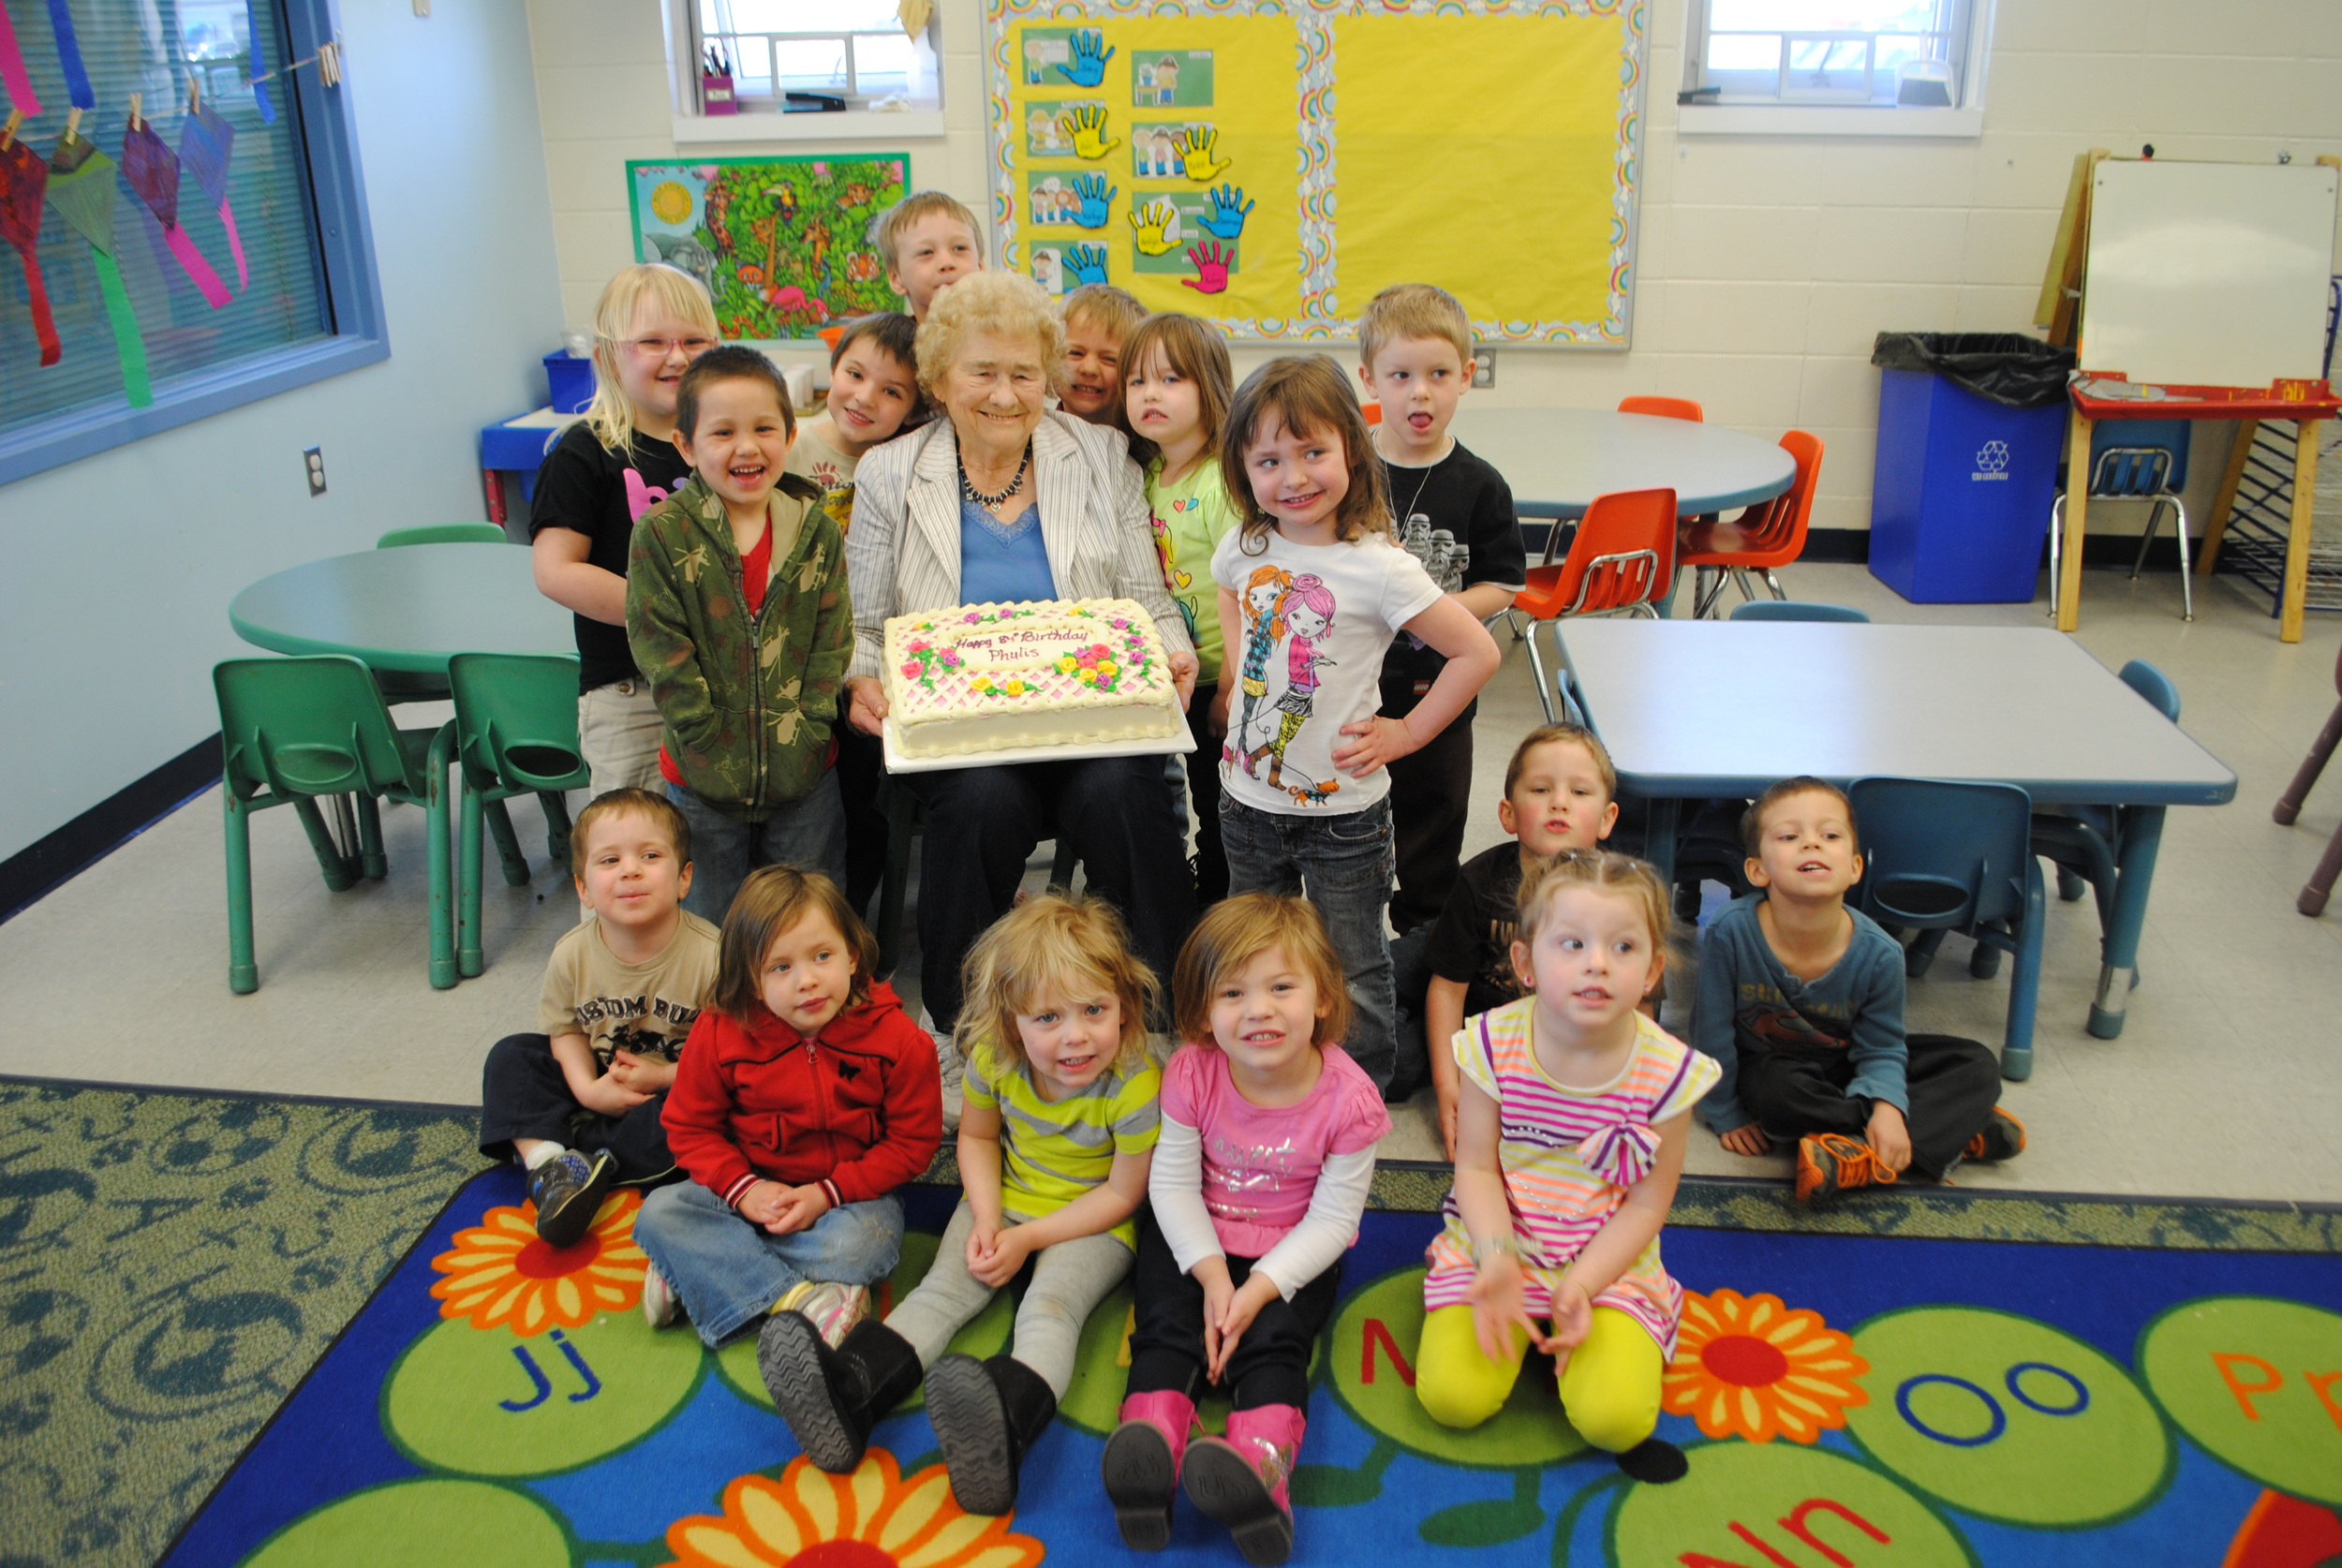 Foster Grandparent Phyllis Jackson celebrated her 84th birthday with WDC Little Kids Club at M State on Thursday. The kids presented Grandma Phyllis with a homemade card and lots of birthday hugs. (Photo by Dana Pavek, WDC Schools)